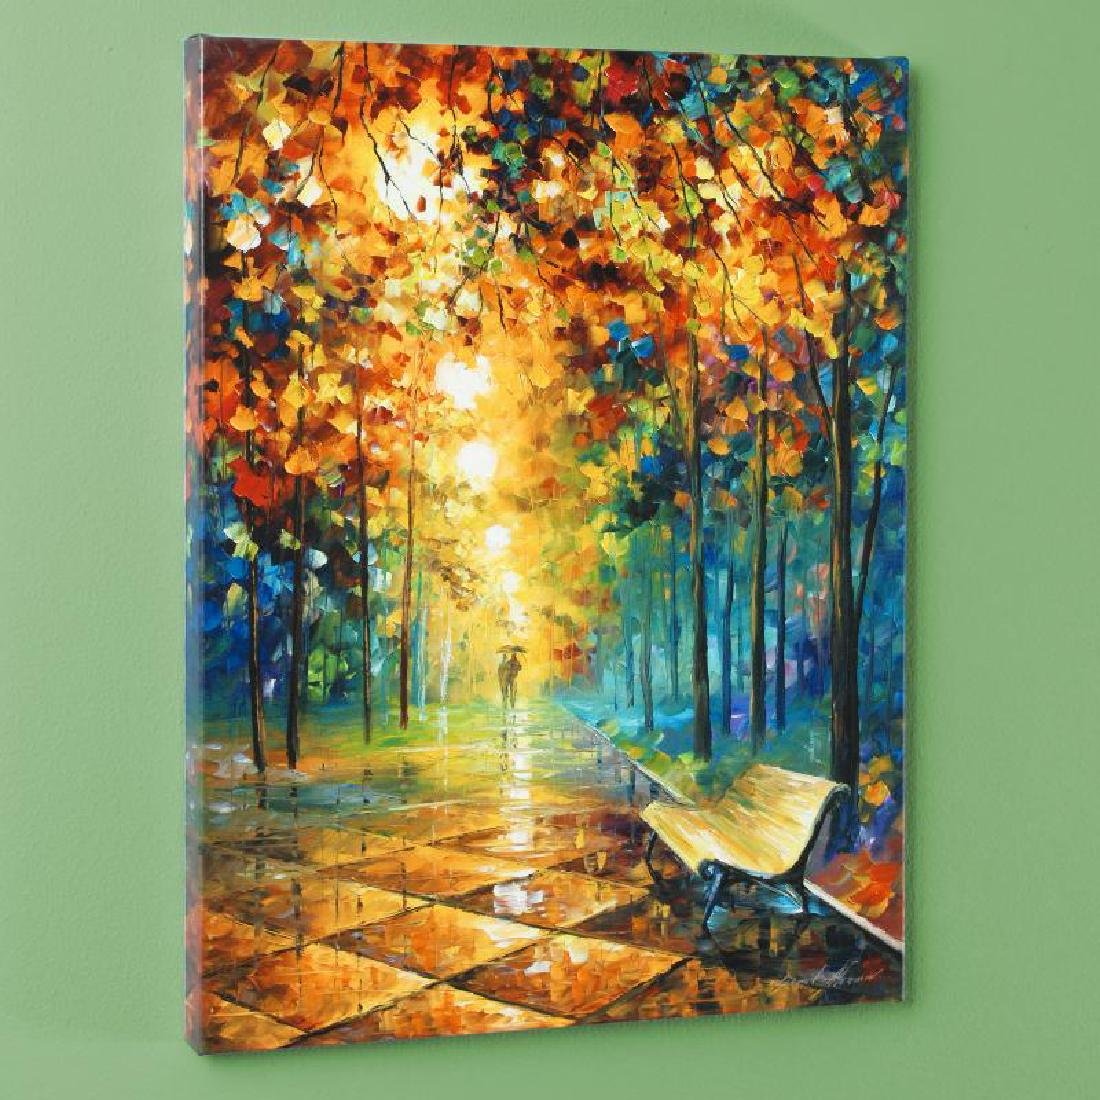 Misty Park LIMITED EDITION Giclee on Canvas by Leonid